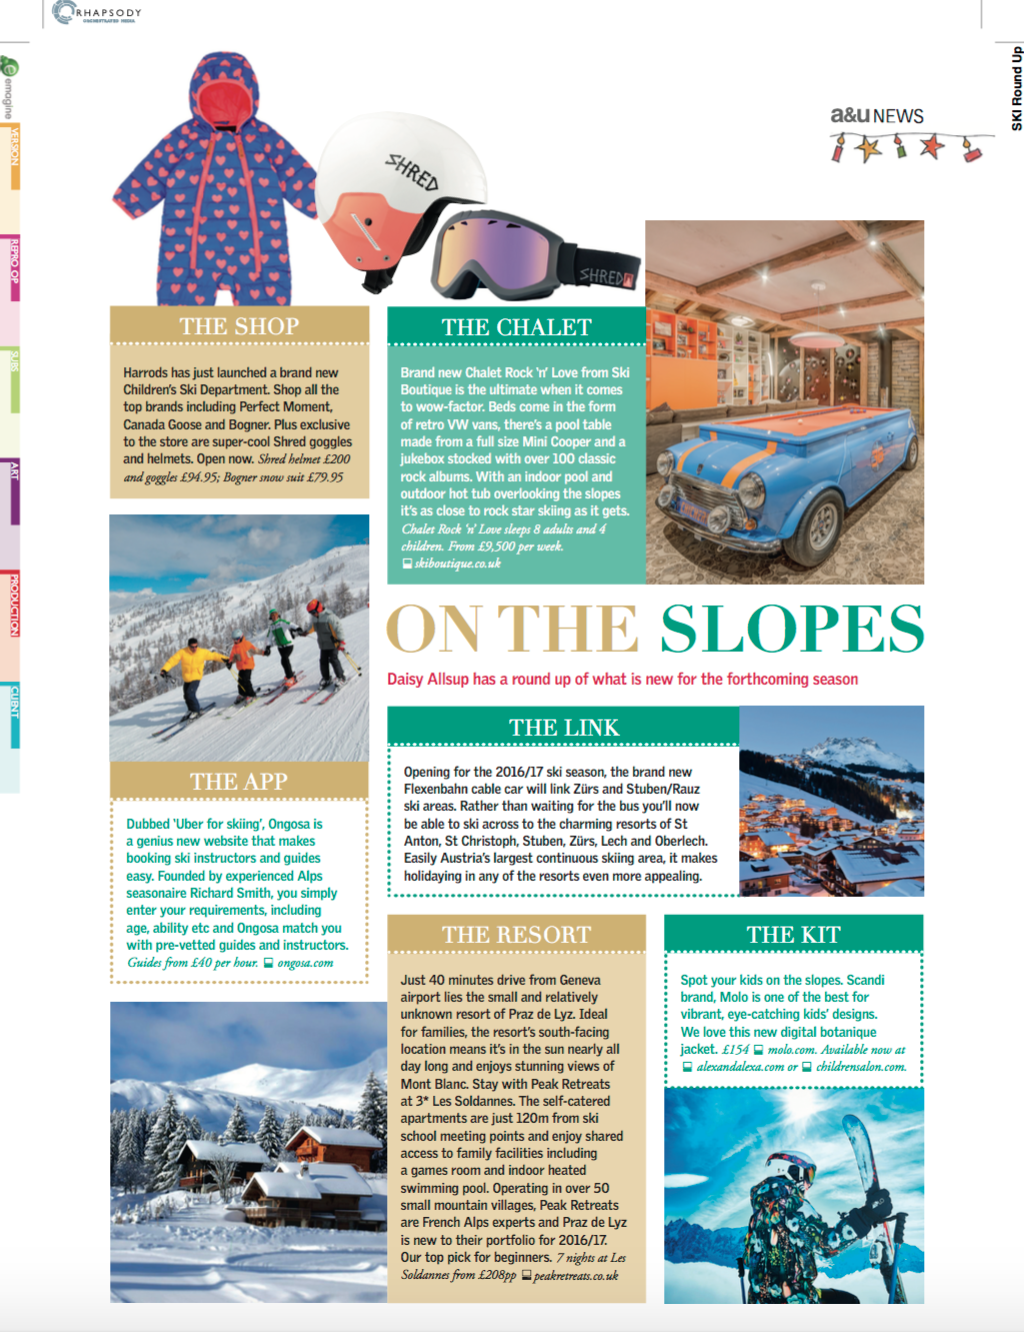 News from the Slopes. angels & urchins magazine, winter 2016